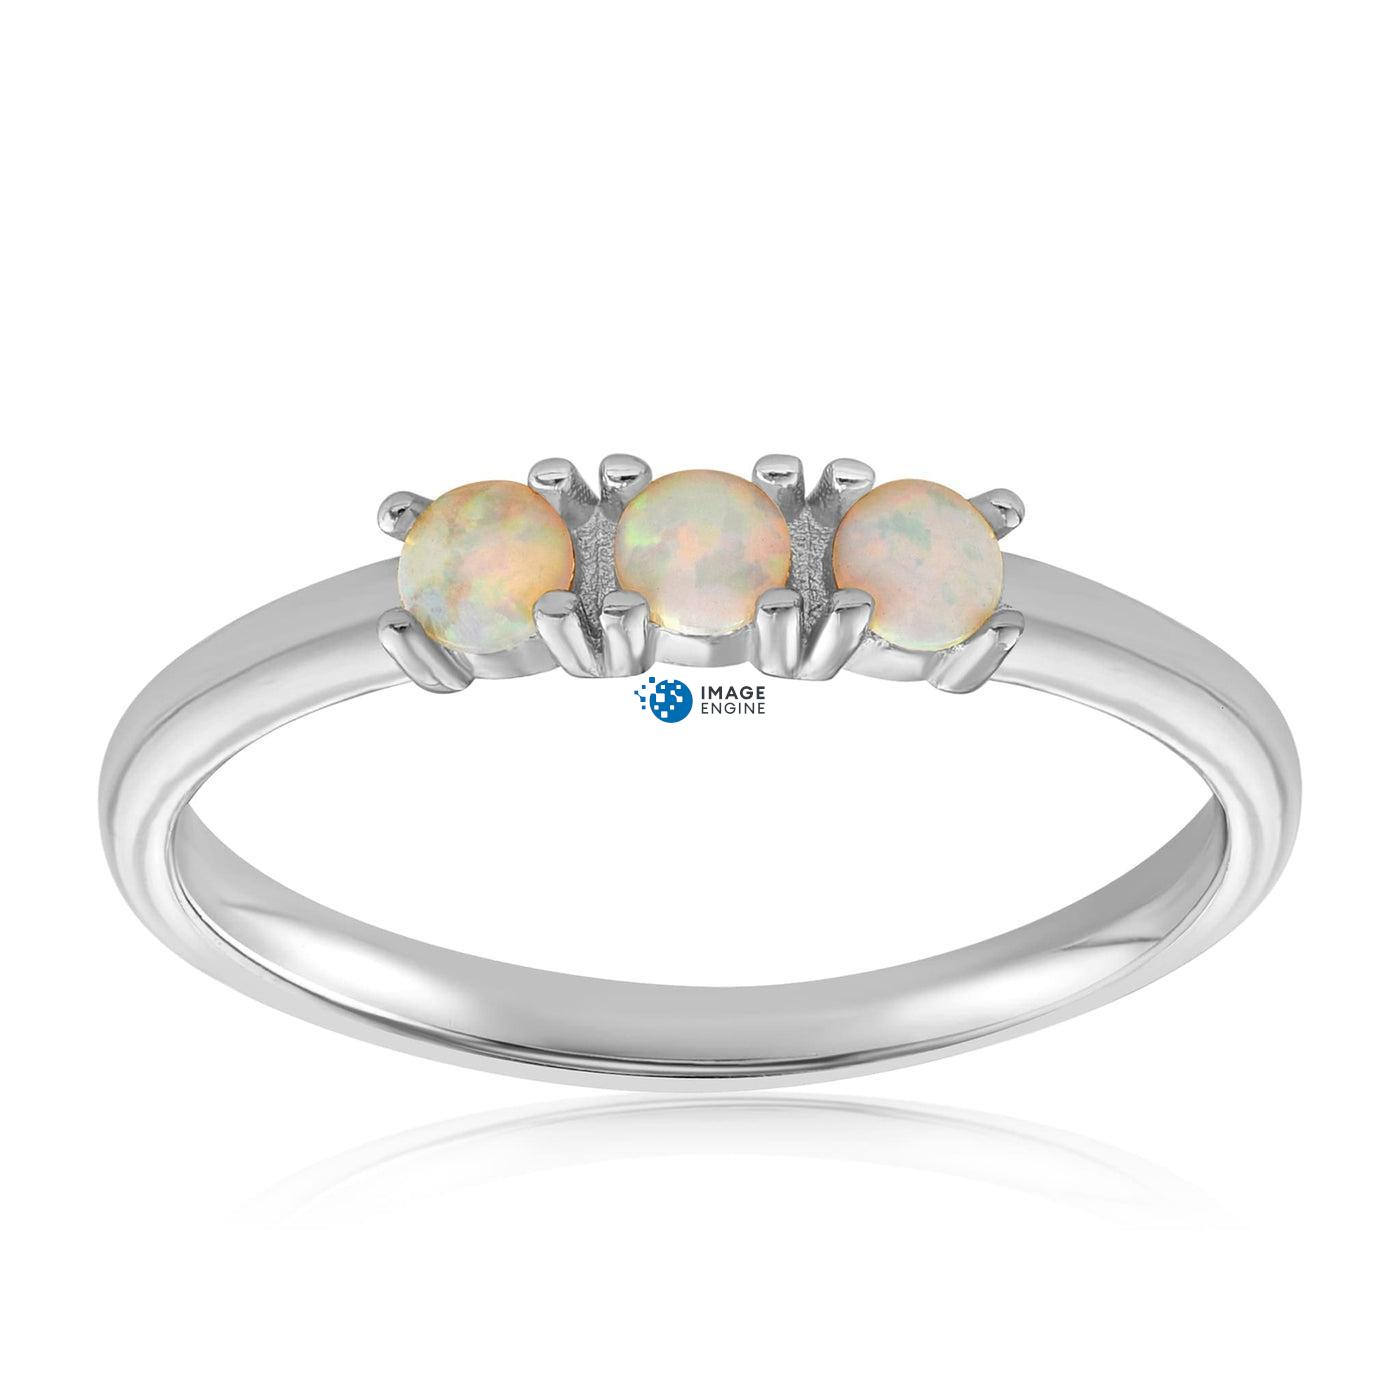 Simple Dots White Fire Opal Ring - Front View Facing Up - 925 Sterling Silver